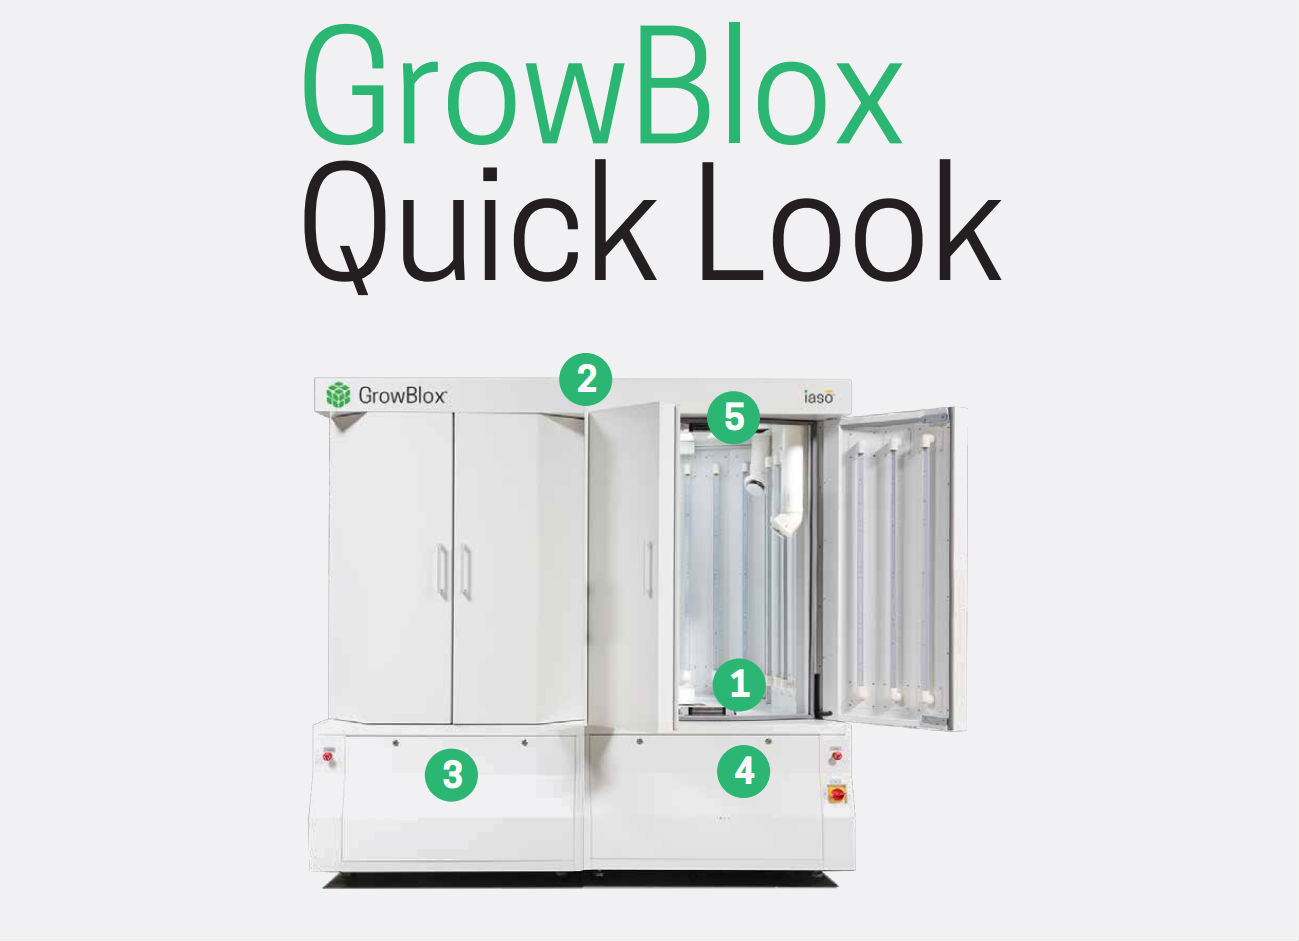 High Sunlight Tostimulate Photosynsis Advanced Led Lighting System Shines A Full Spectrum Maximize Less Less Lessstrain On Growing Cannabis Cannabis Grow Chamber Growblox houzz-03 Cost Less Lighting